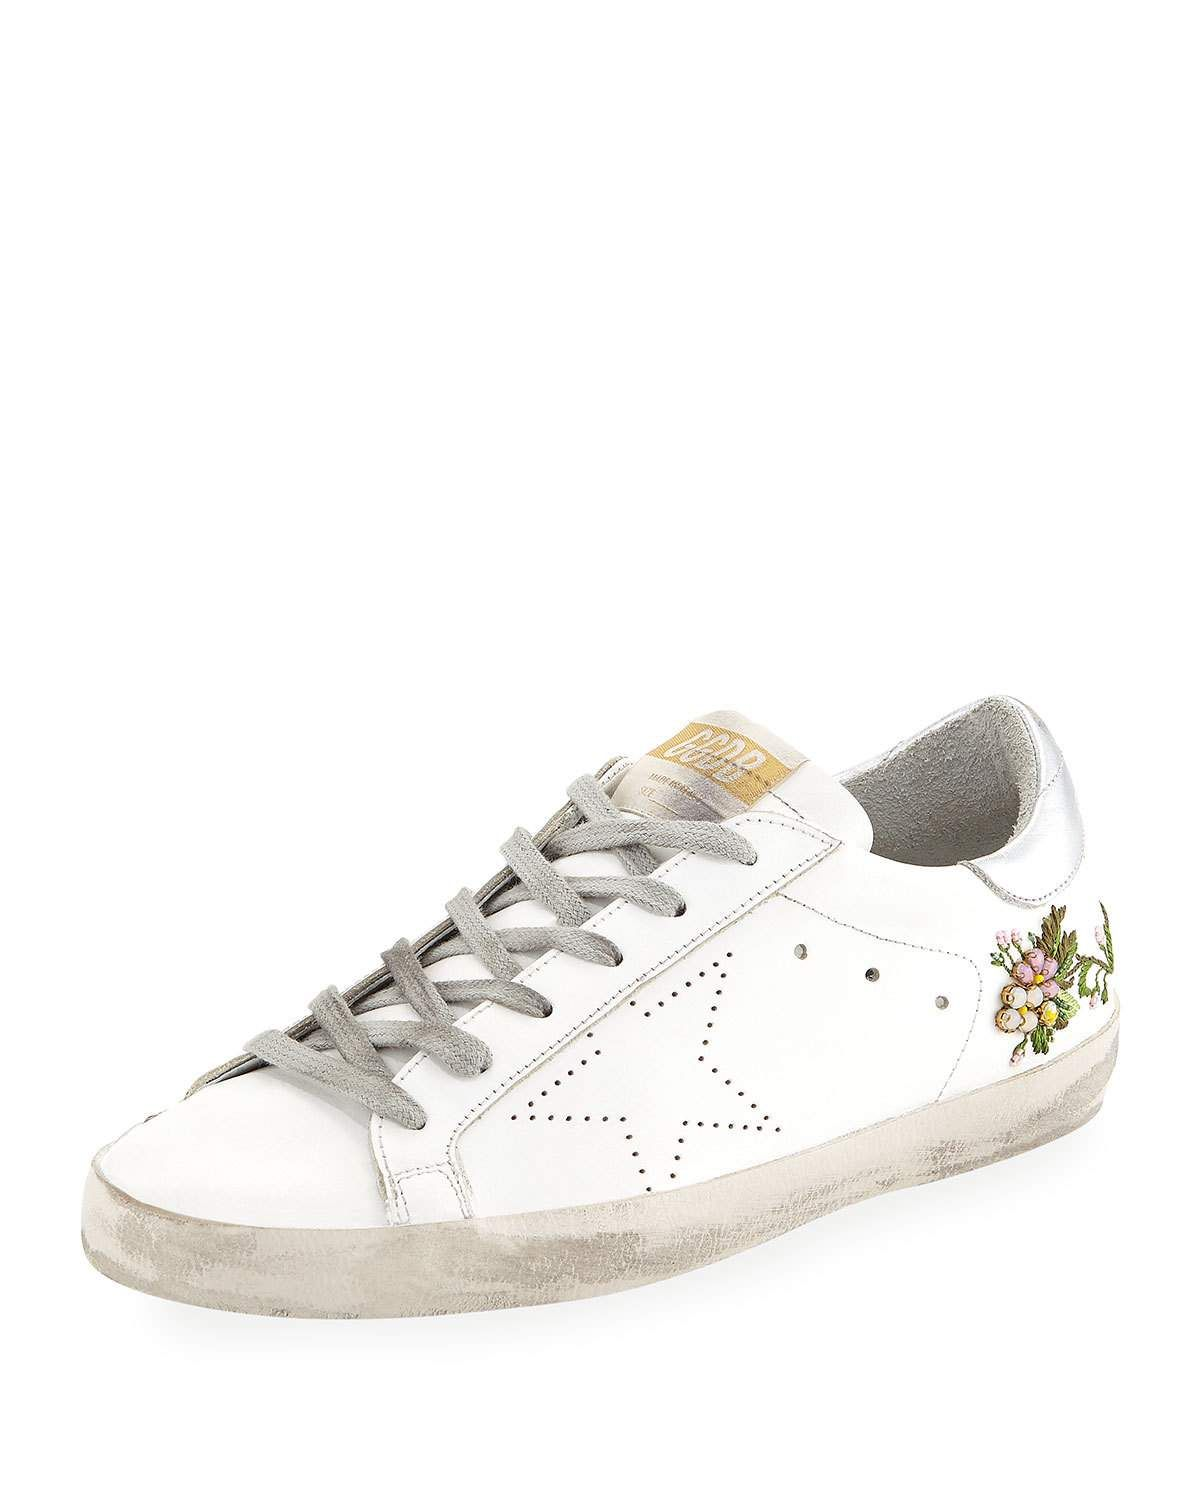 a2414934a08f5 Golden Goose Superstar Floral Leather Sneakers in 2019 | Mother's ...